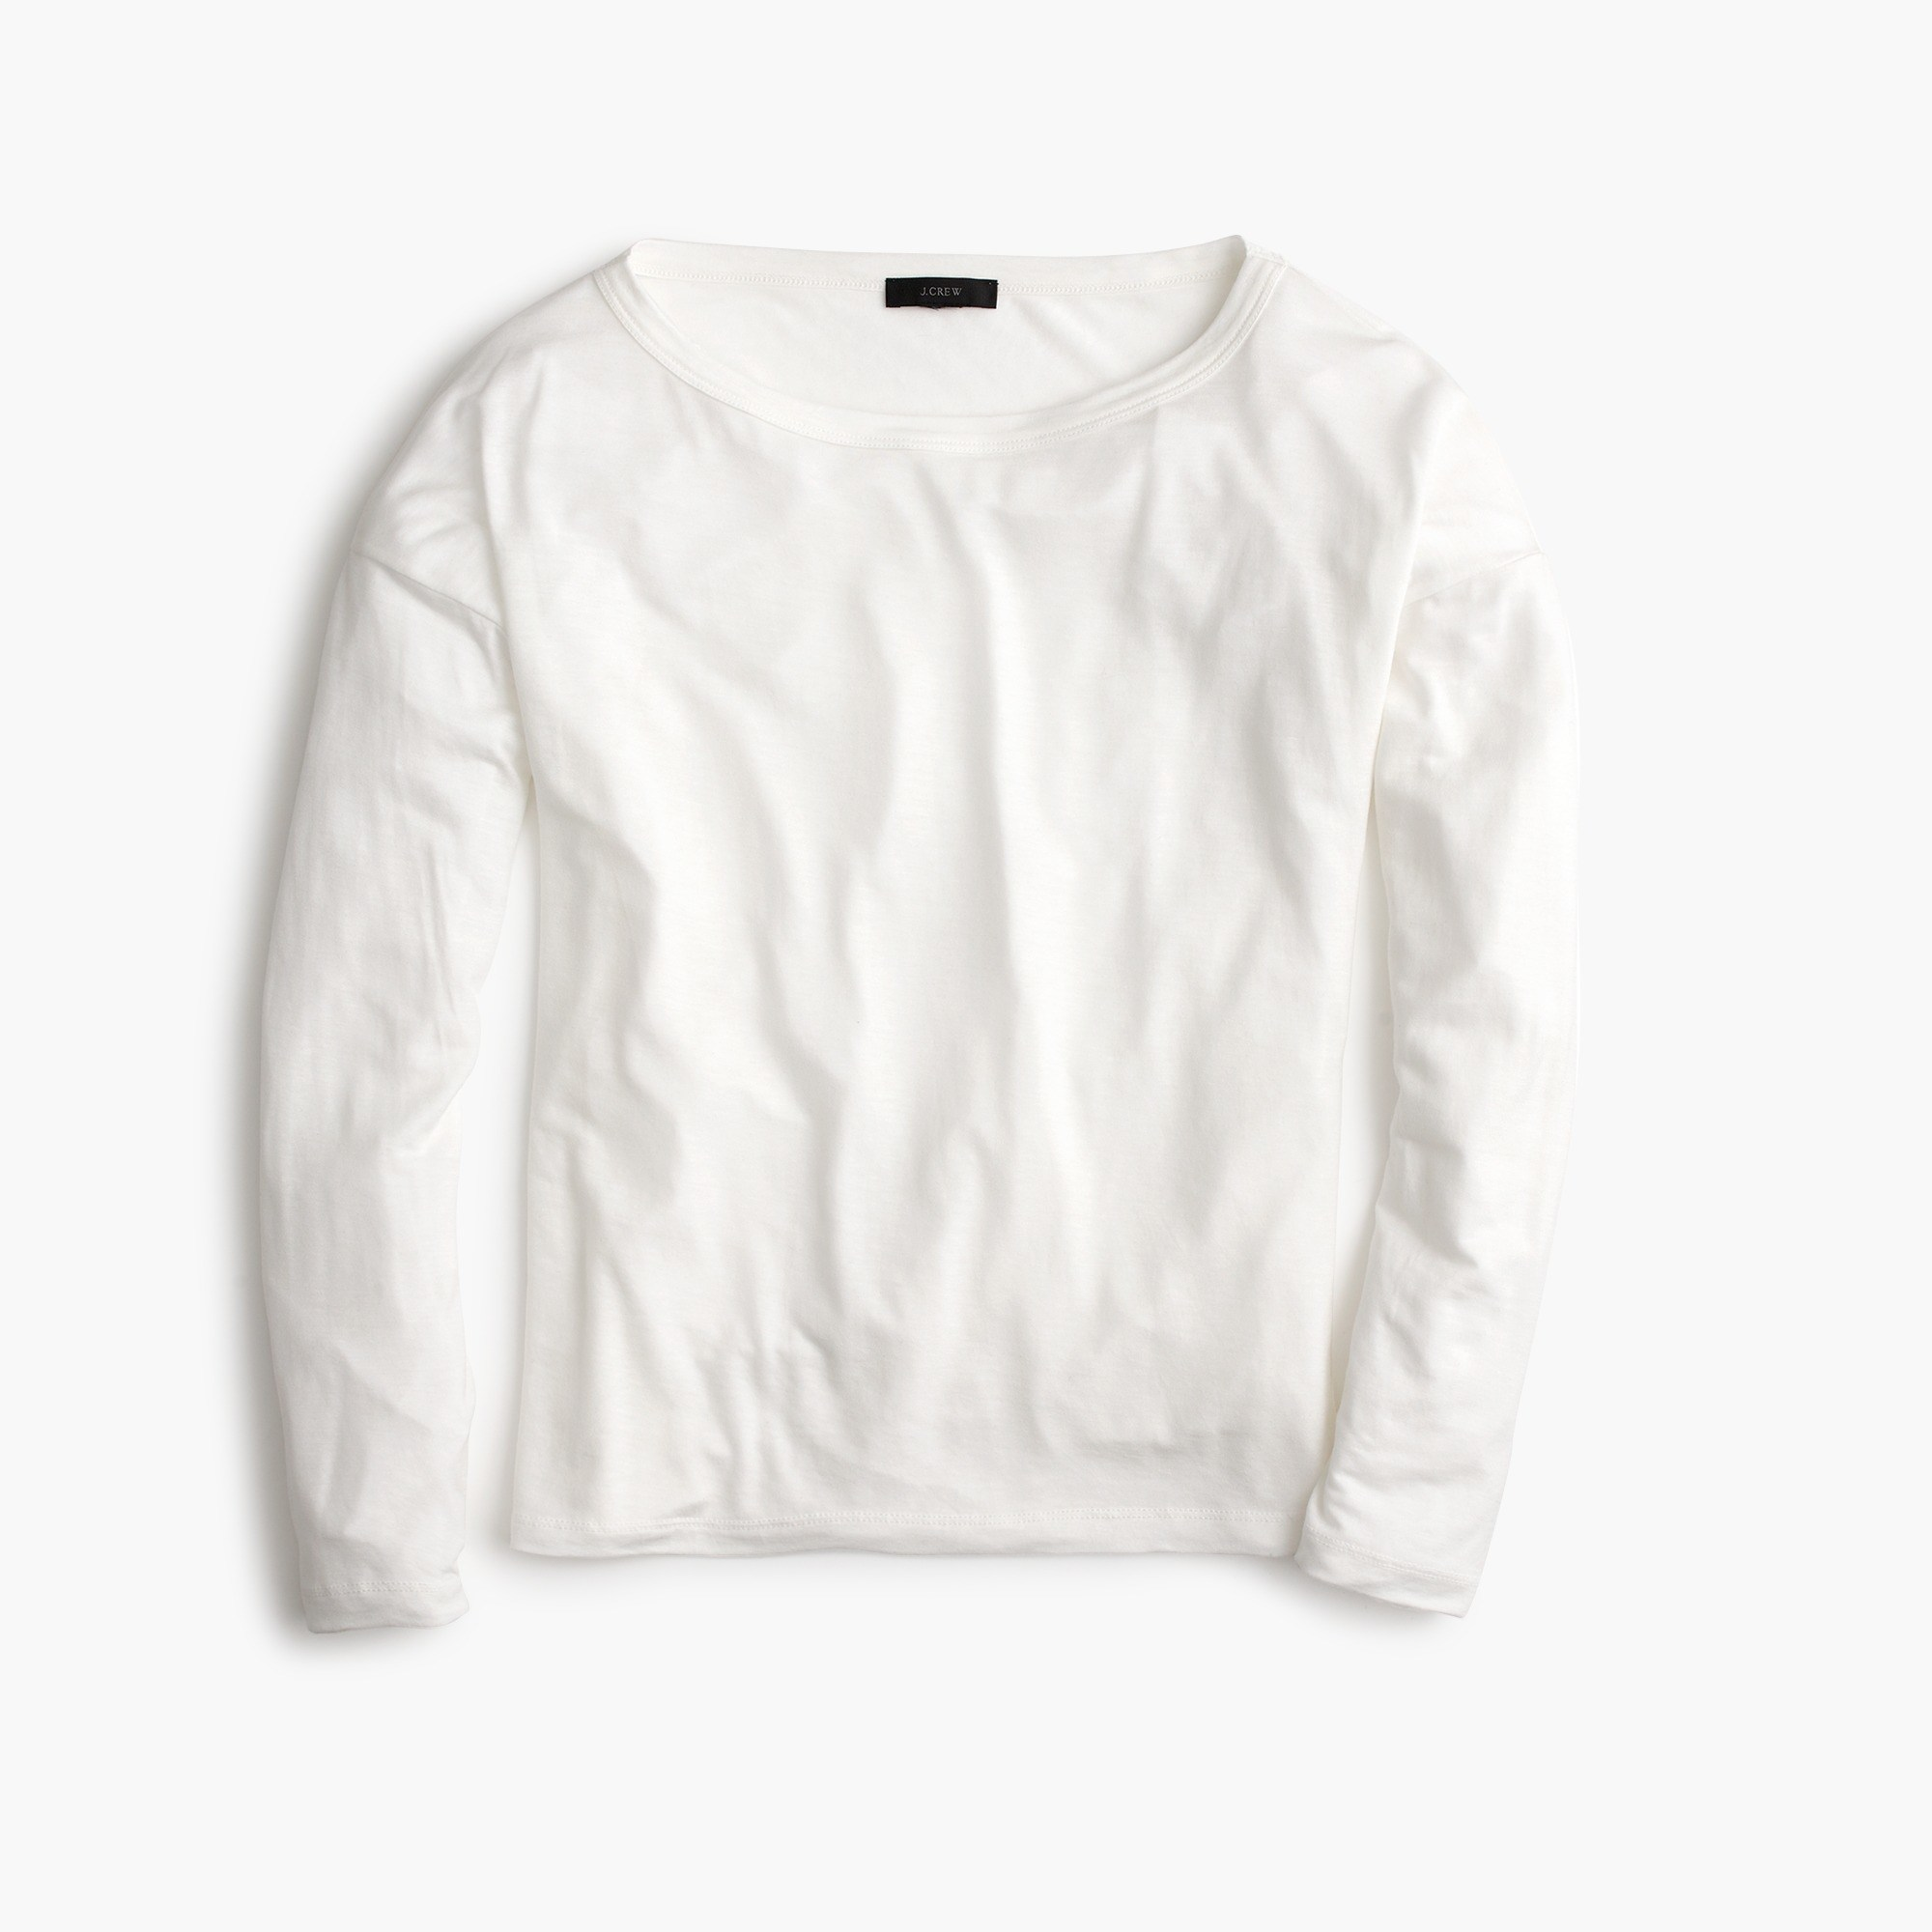 Long-sleeve lyocell T-shirt : Women tee | J.Crew